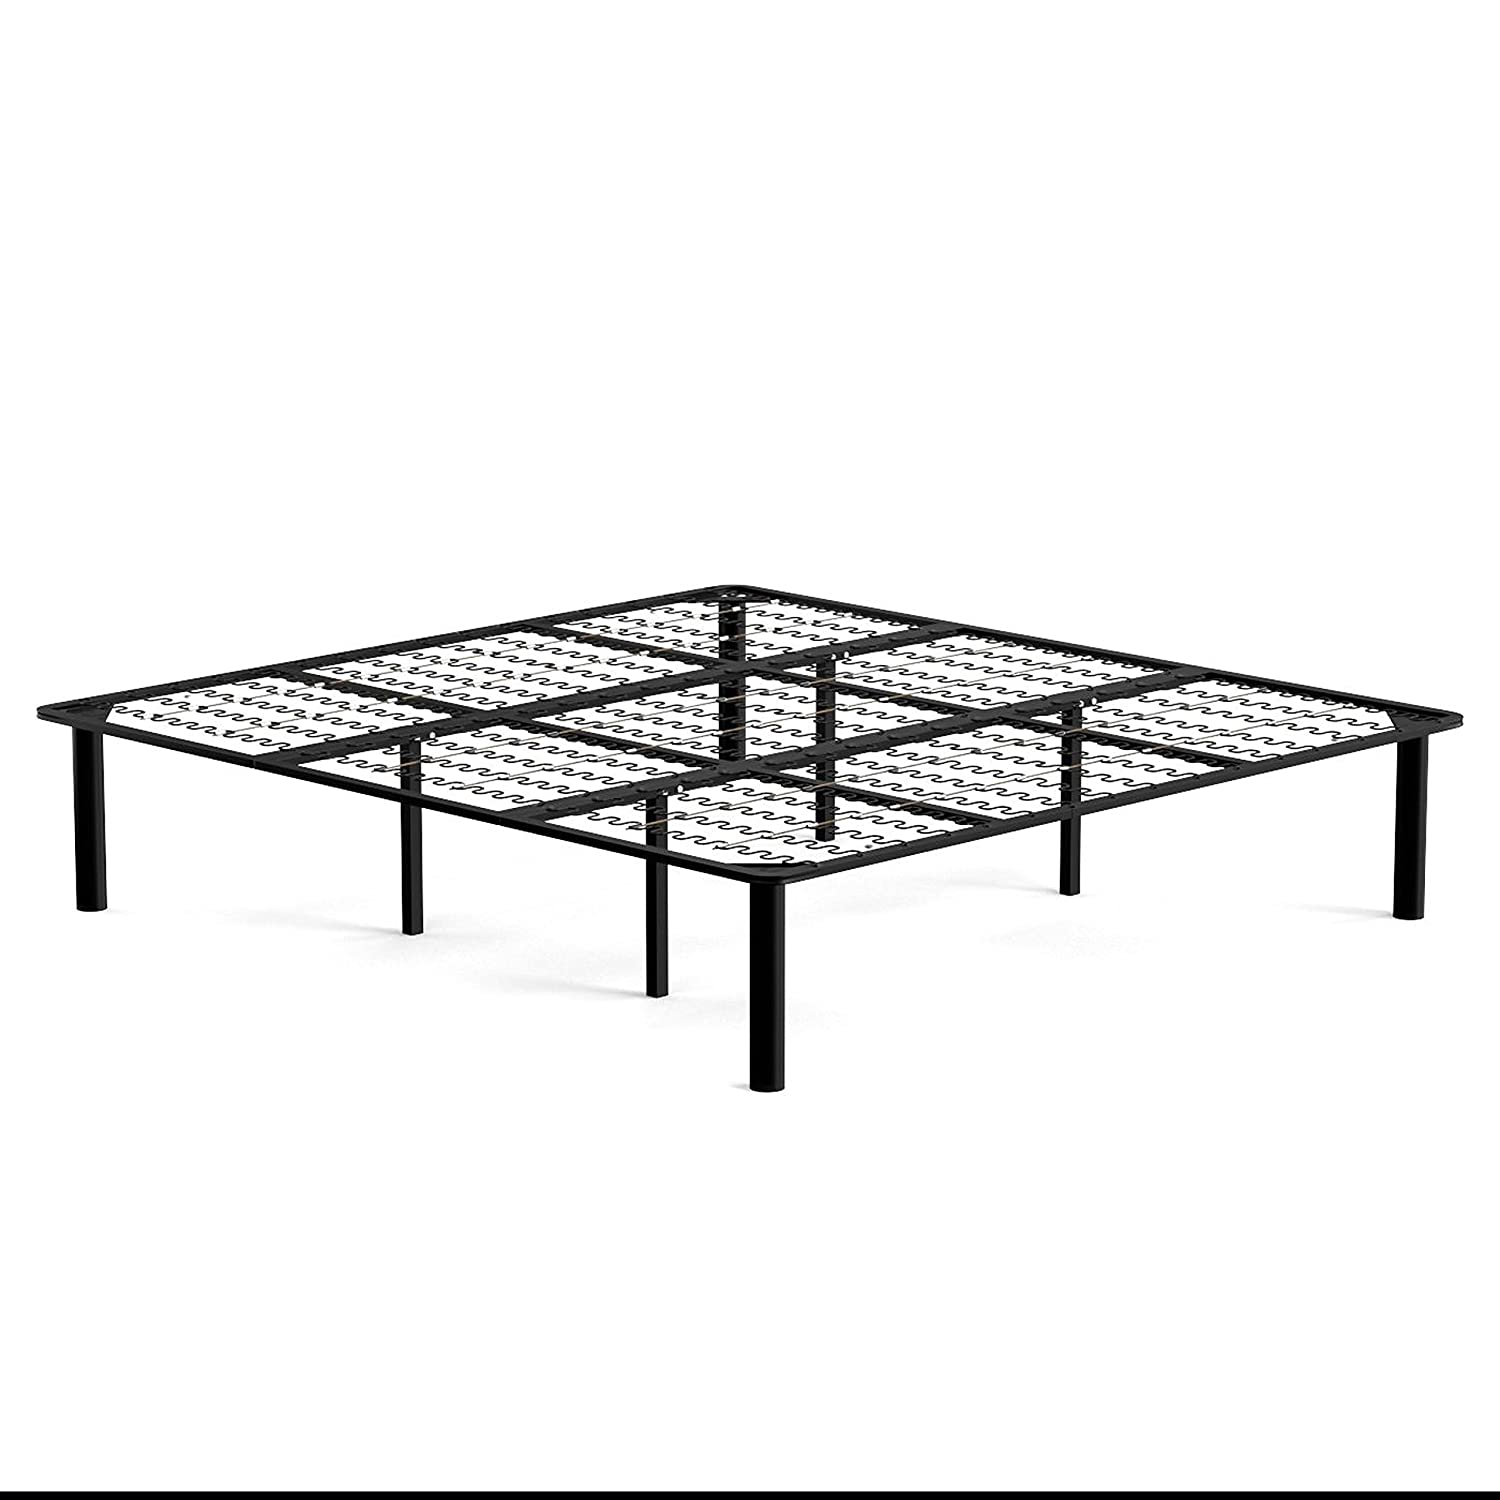 Amazon.com: Handy Living Bed Frame King: Kitchen & Dining